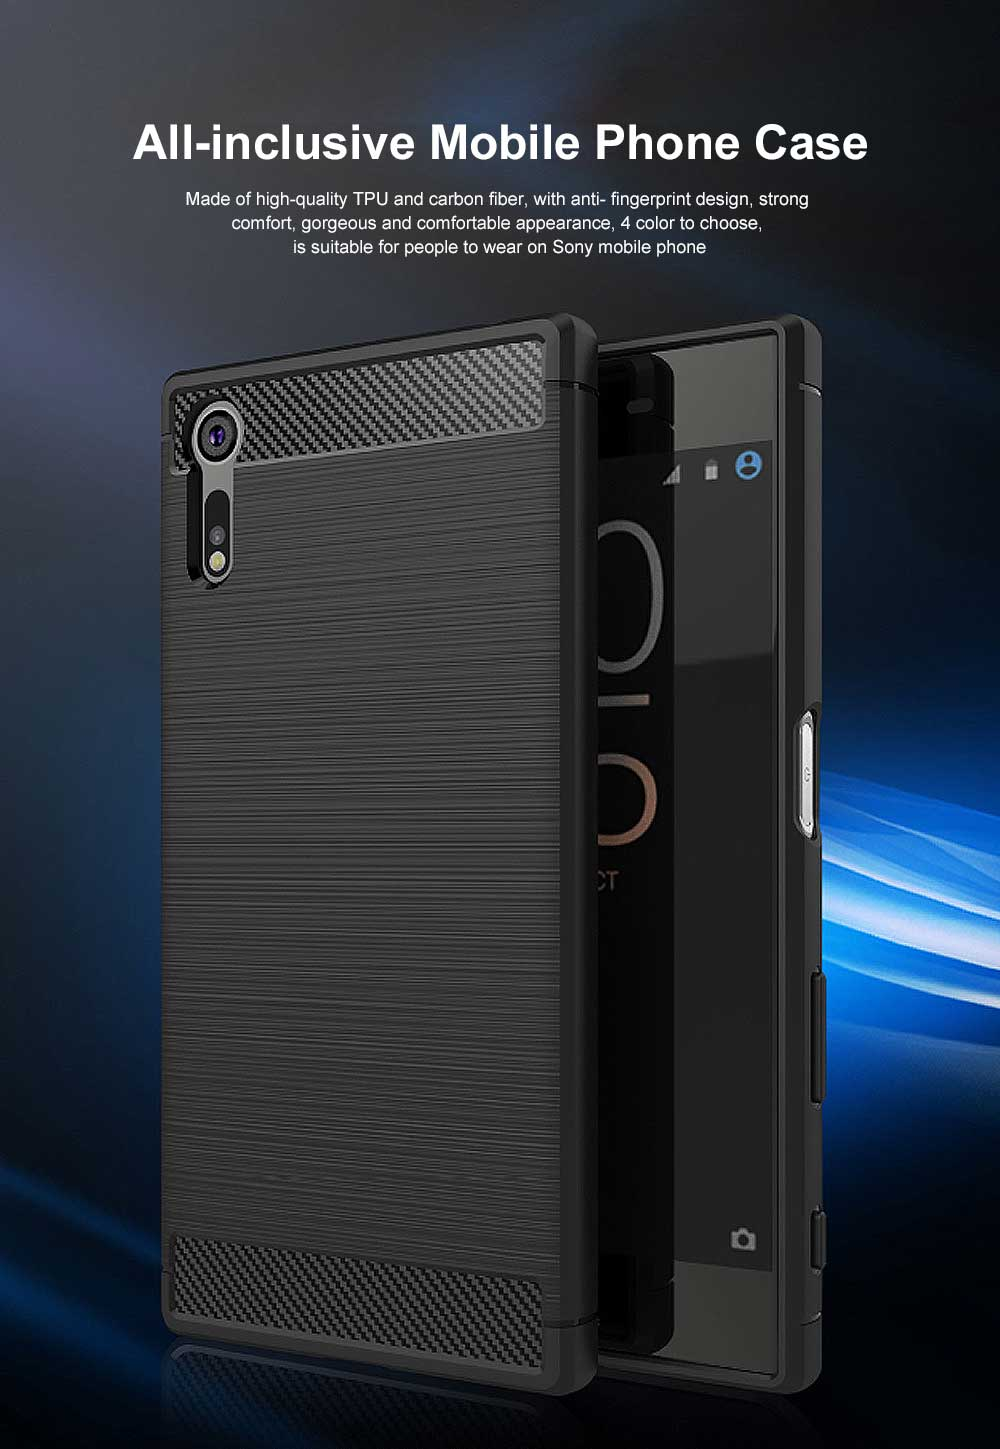 All-inclusive Phone Case for Snoy XZ, Anti Fingerprint Snoy A1 Premium Case with TPU and Carbon Fiber 0